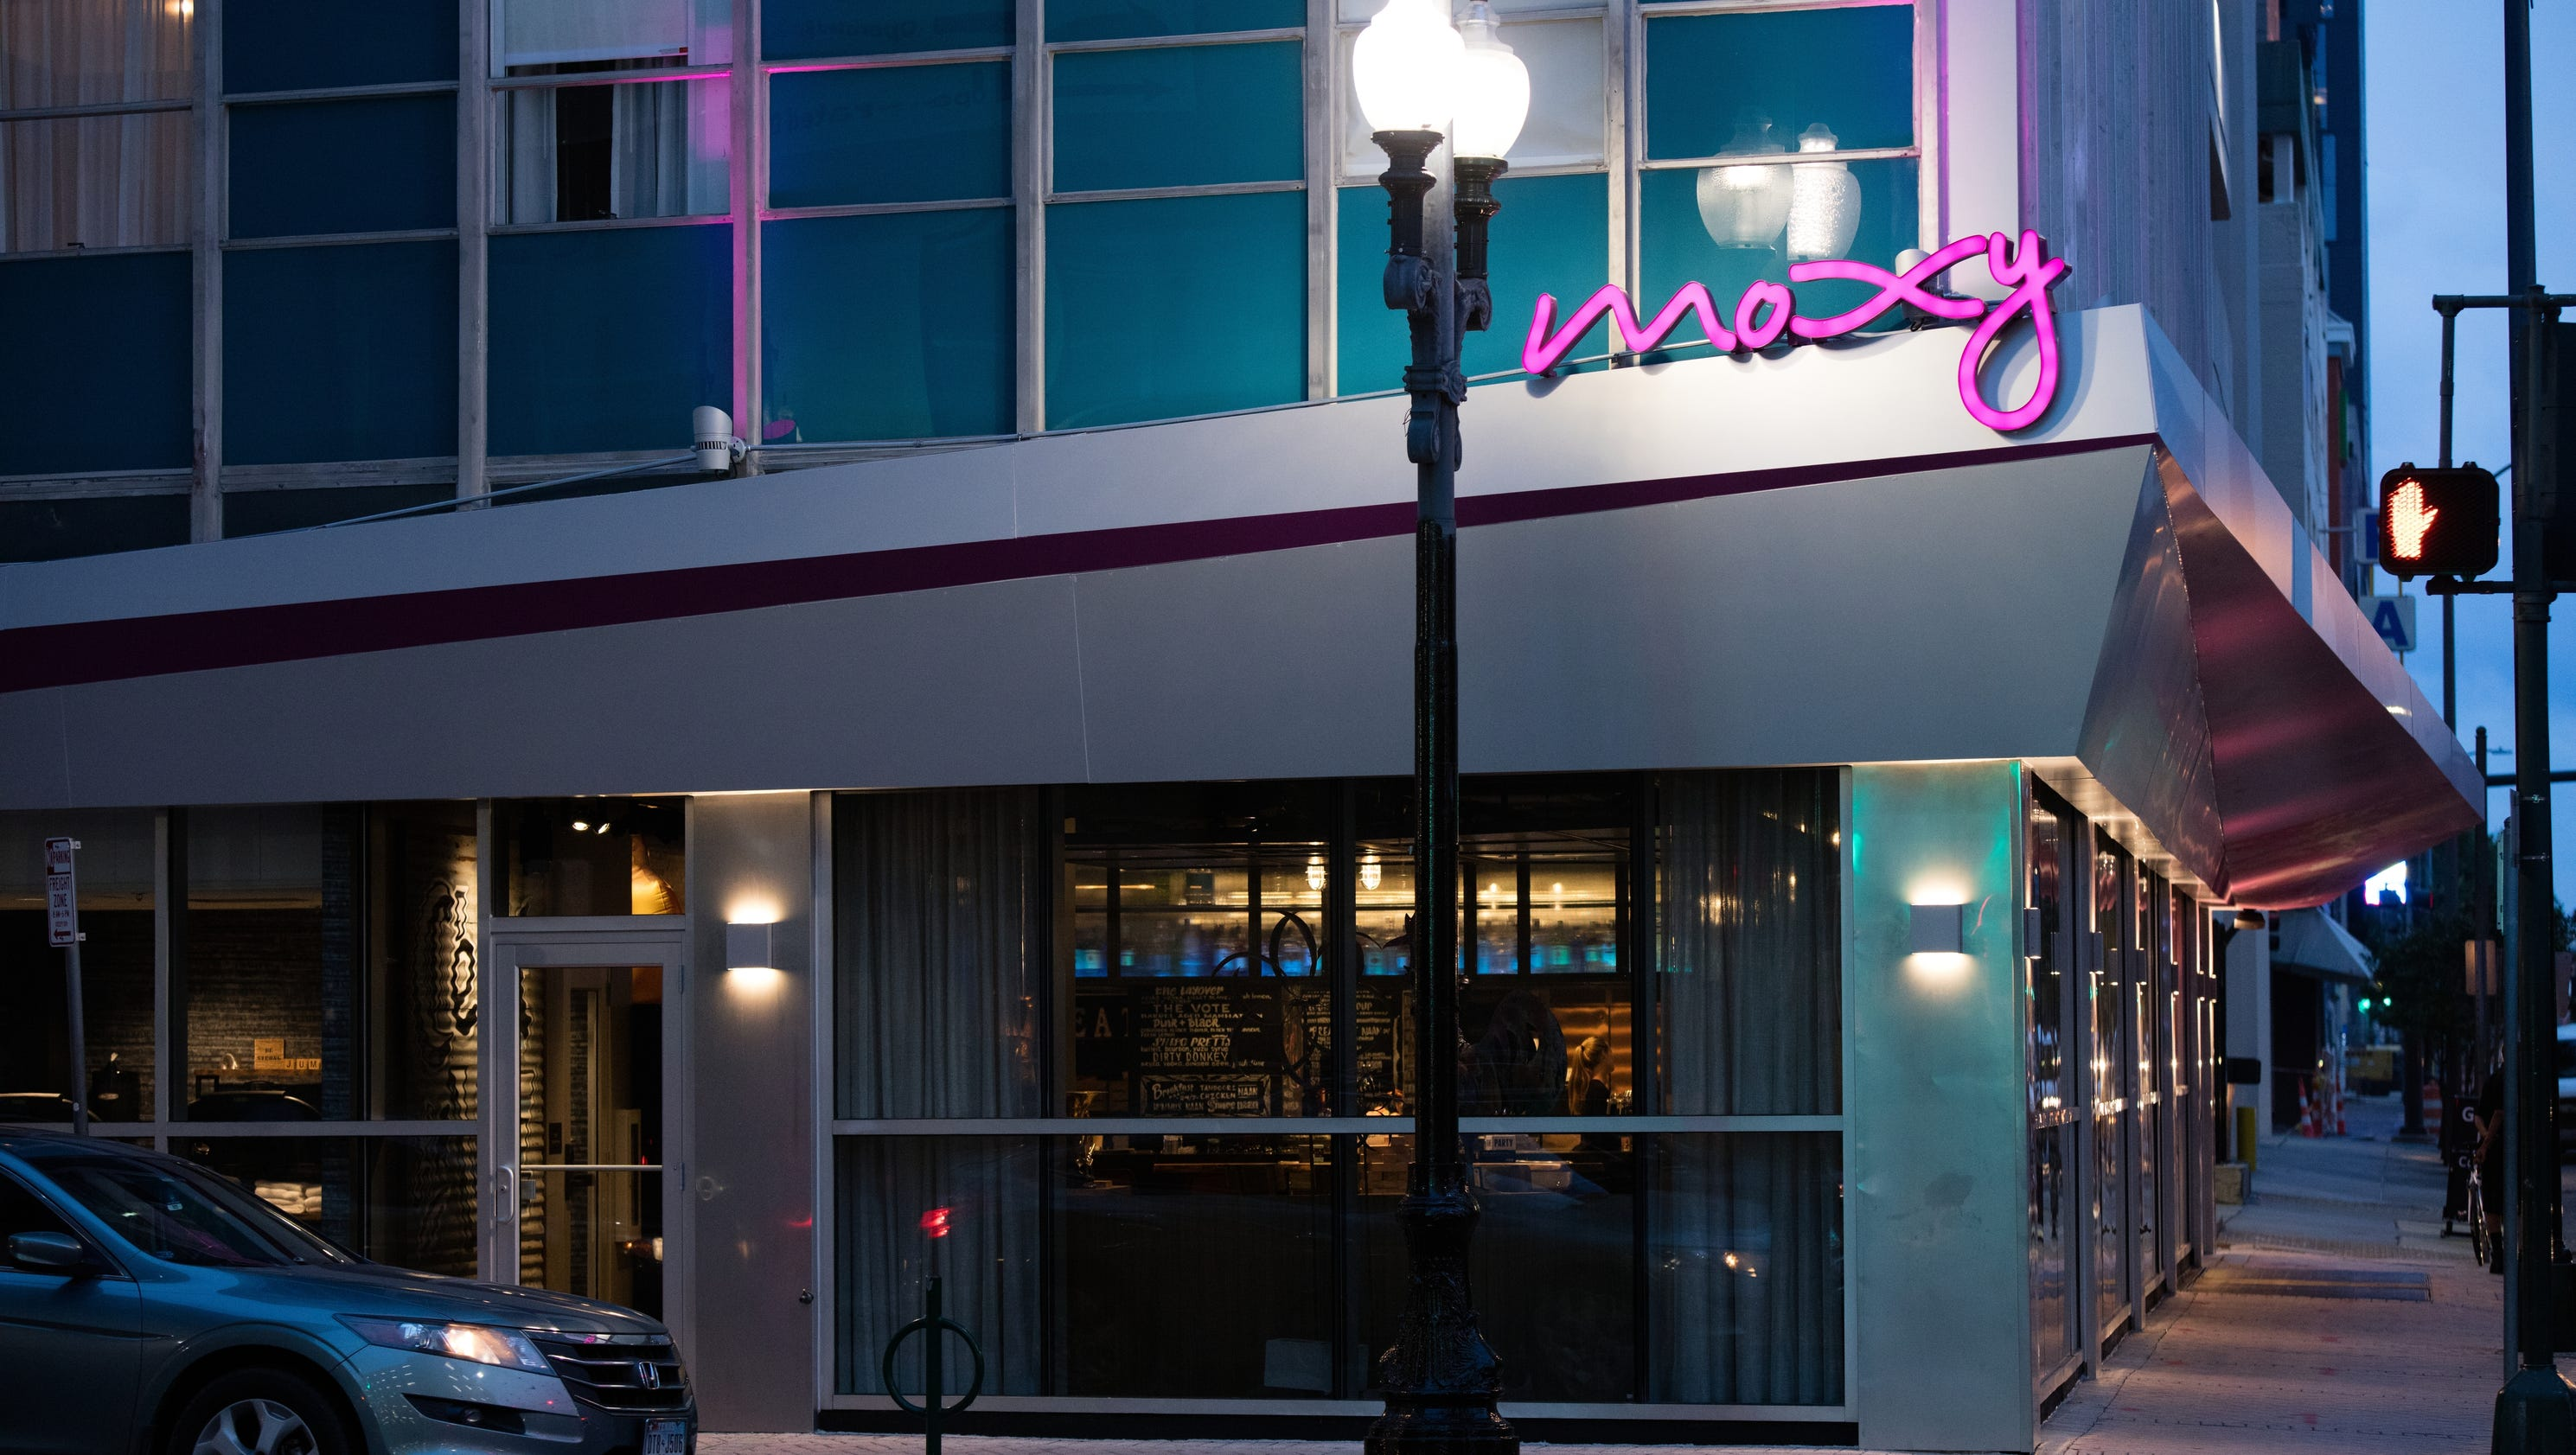 first look at marriott 39 s new moxy hotel brand in new orleans. Black Bedroom Furniture Sets. Home Design Ideas